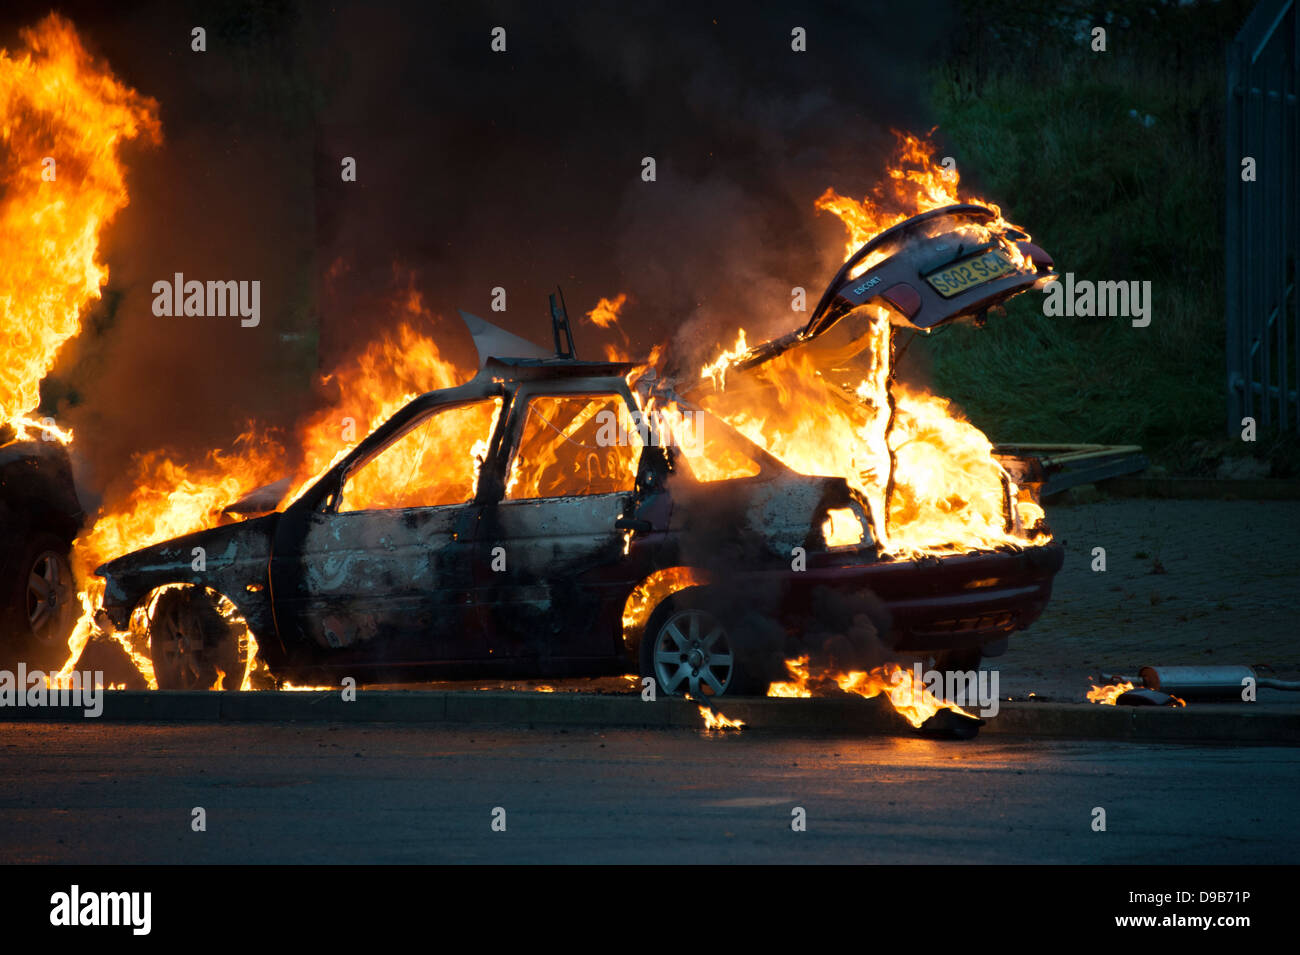 Car on fire rioting civil disturbance unrest - Stock Image